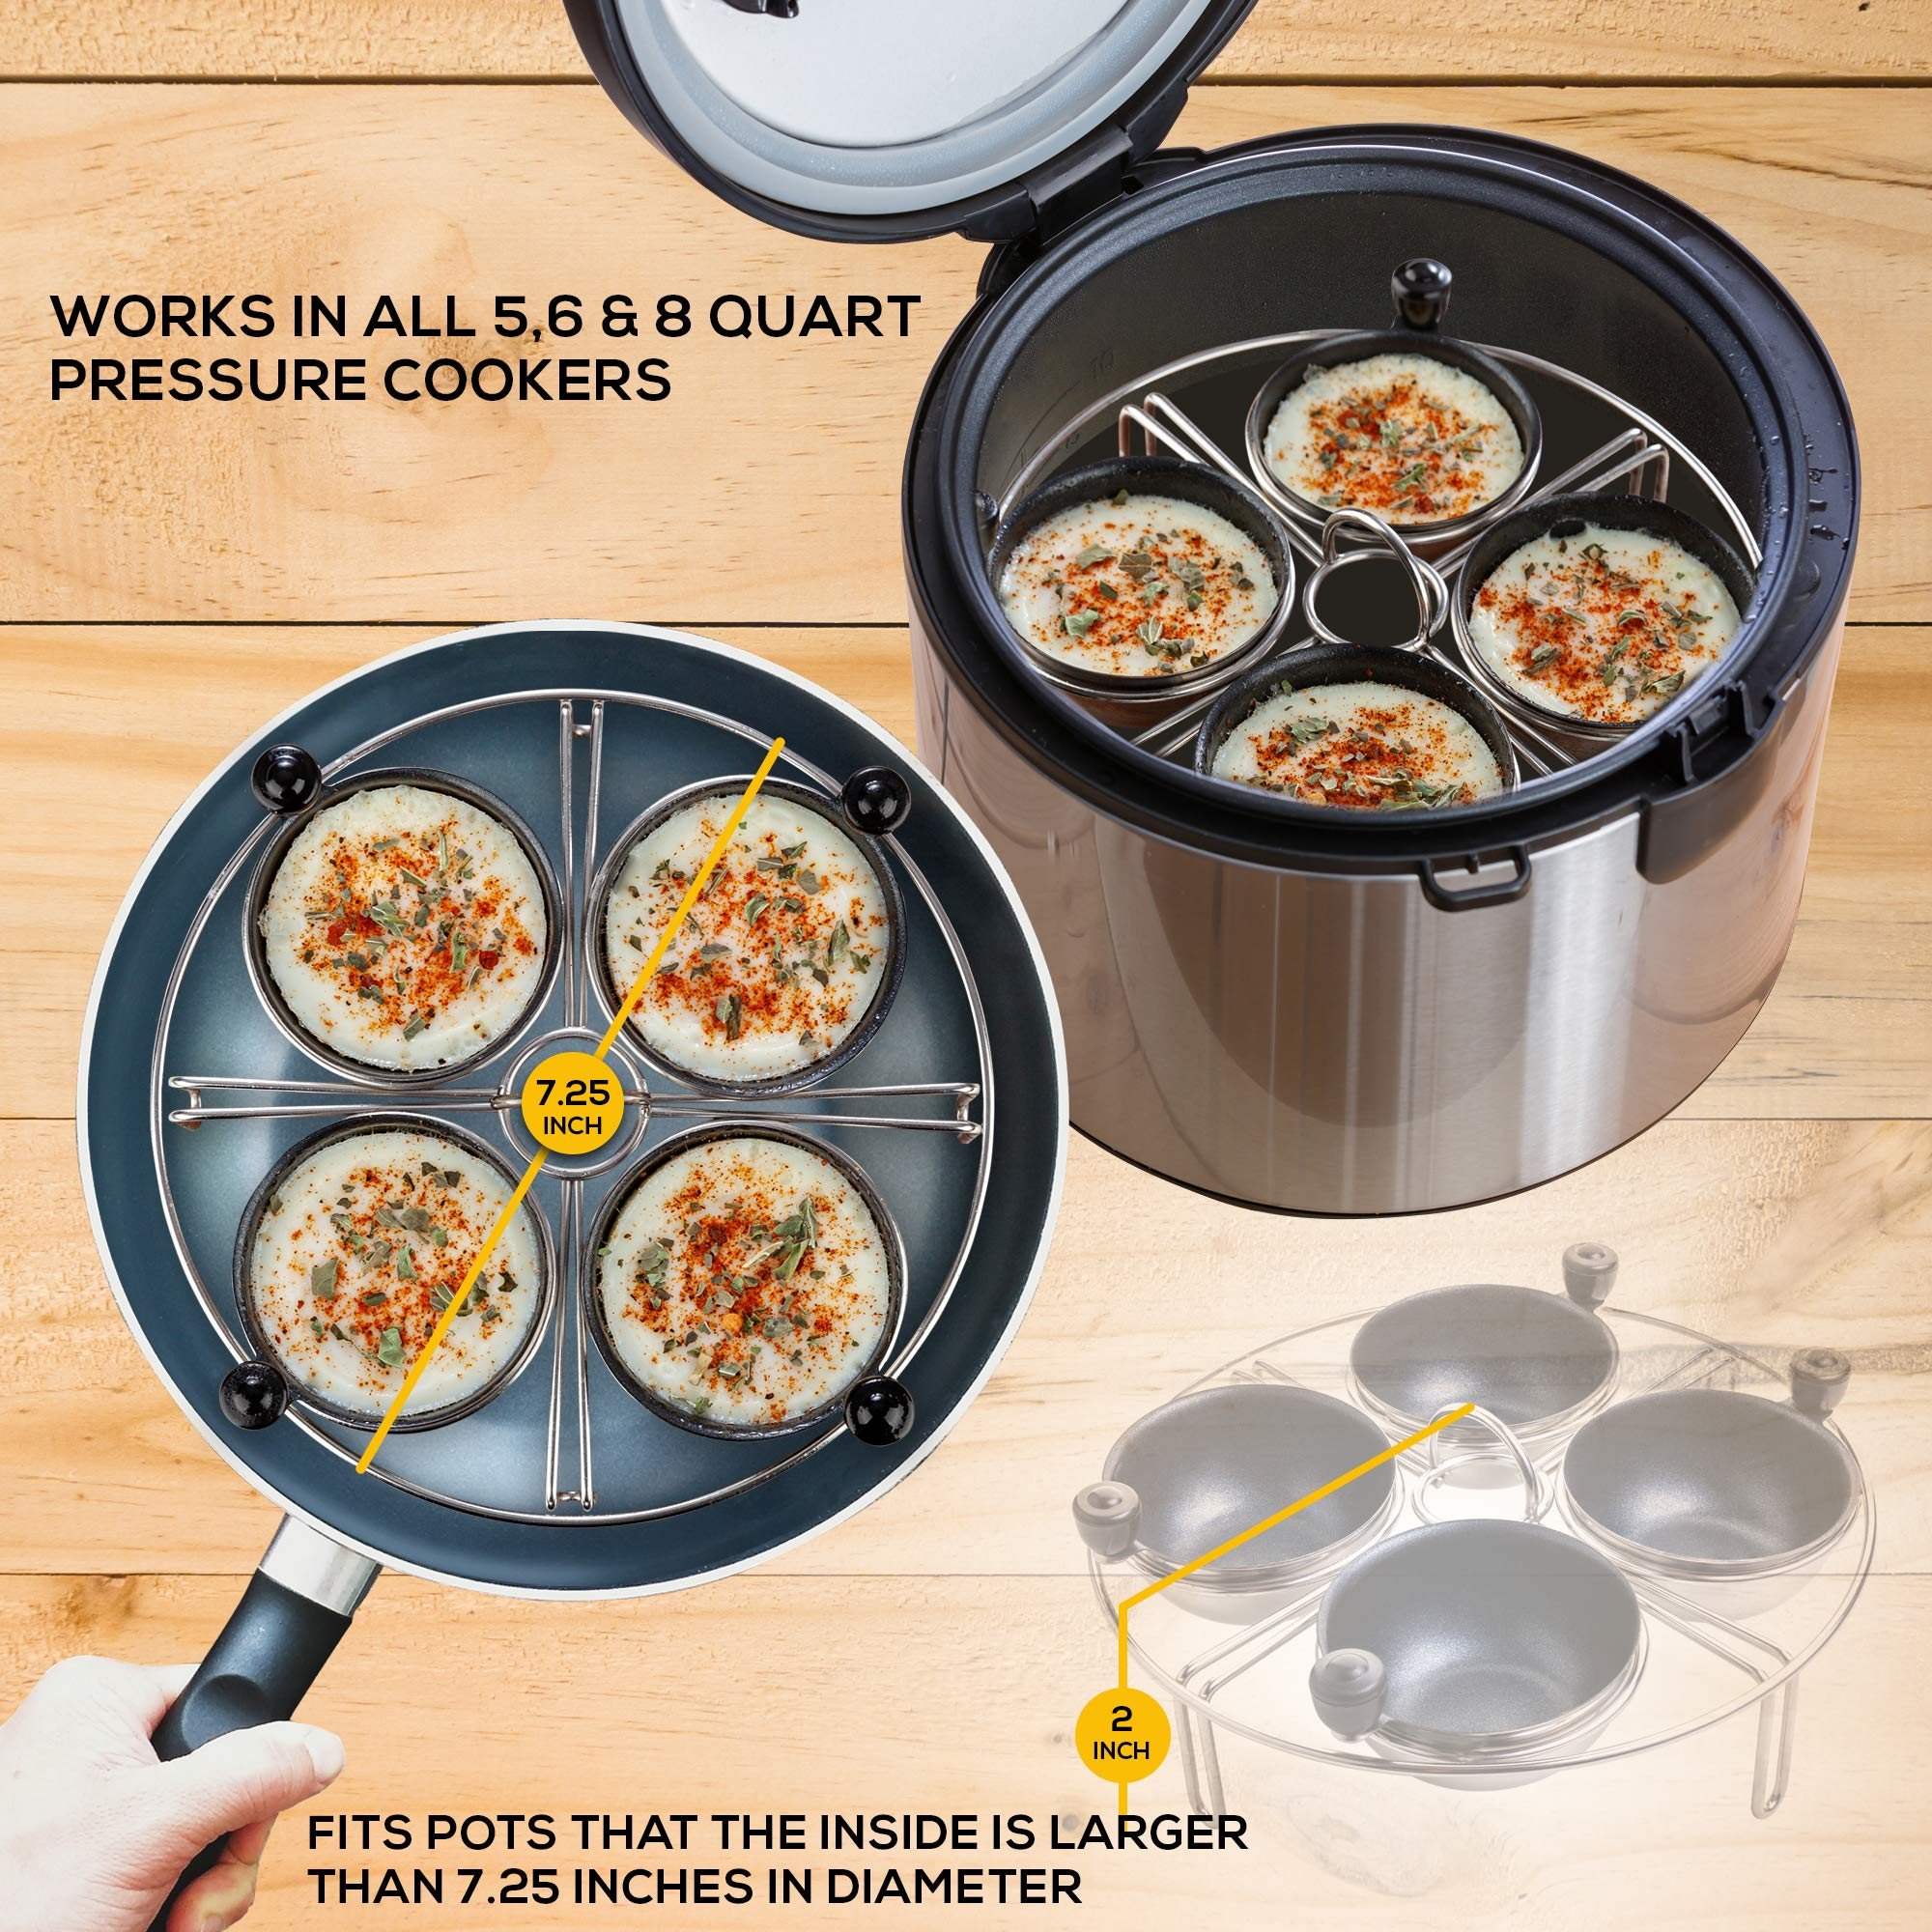 Eggssentials Egg Poacher 4 Egg Rack| Fits Many sized Pans Skillets and Pressure Cookers| Instant Pot Accessory Stainless Steel Egg Poaching Cups PFOA Free Non-stick Coating| Measures 7.25 Inches by Eggssentials (Image #2)